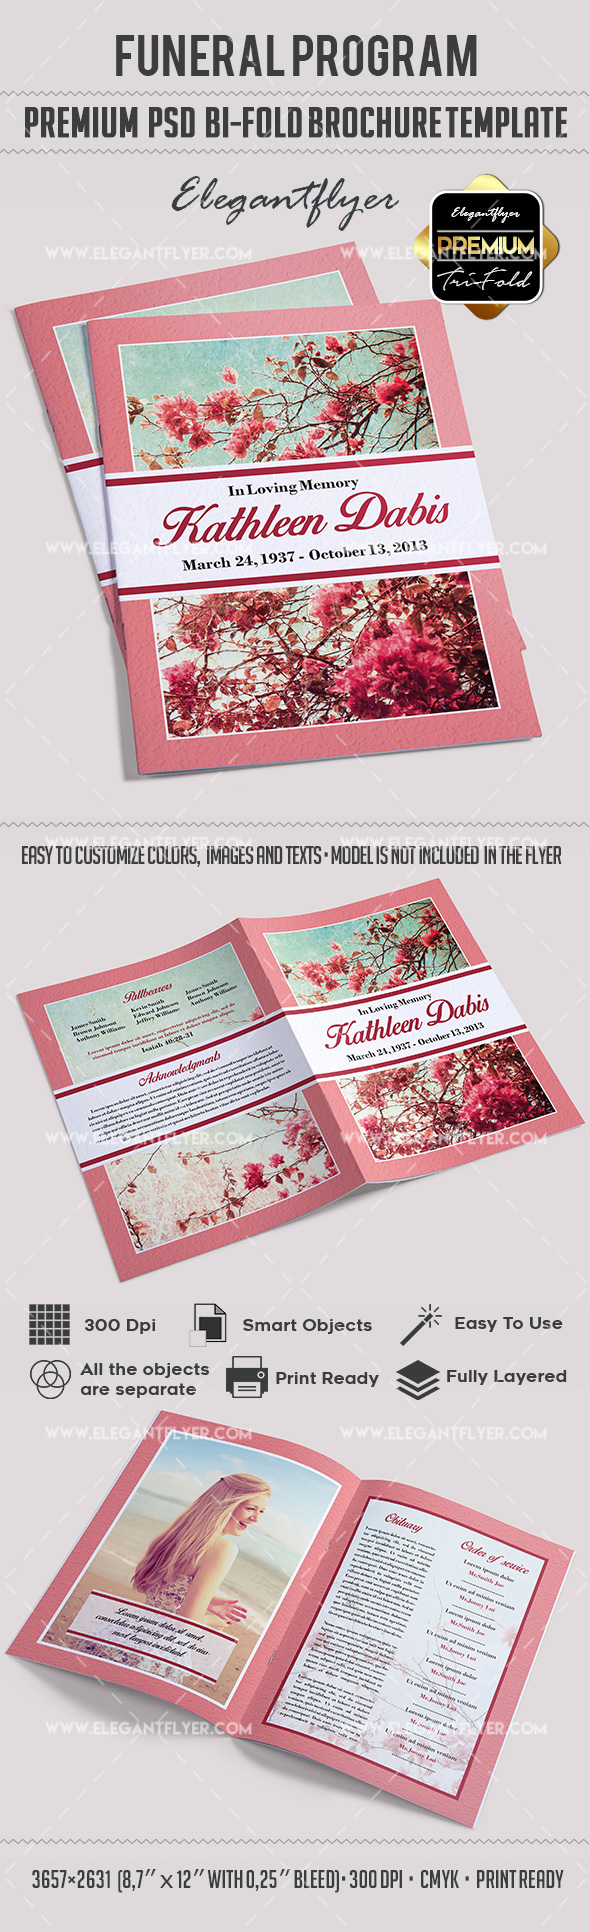 Sample Bi Fold Brochure | Sample Bi Fold Brochure Funeral Program By Elegantflyer